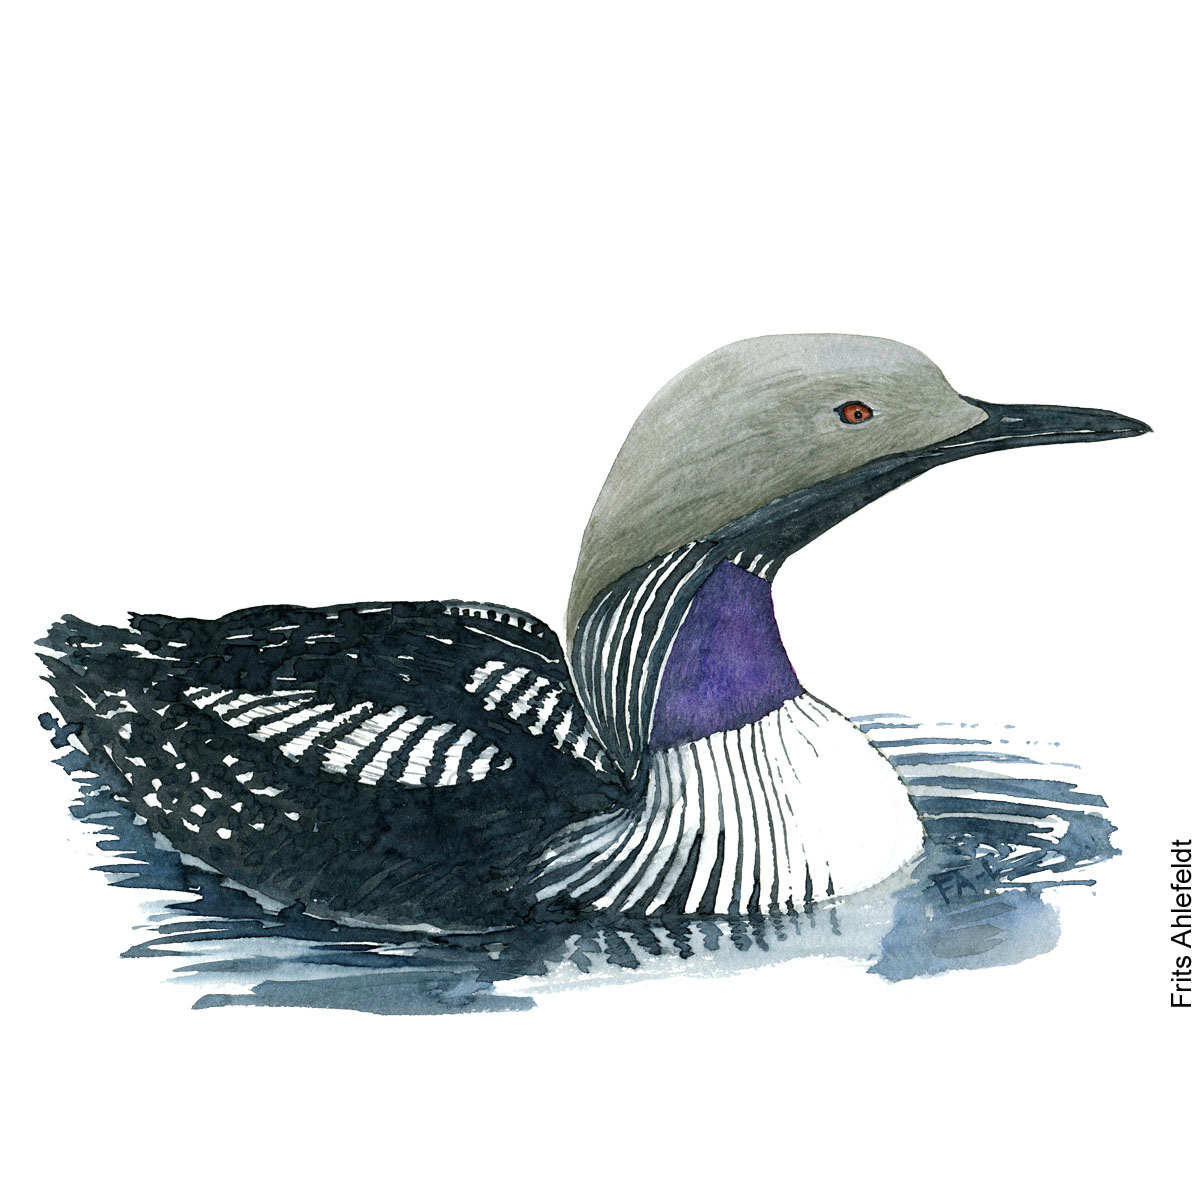 Arctic loon Bird watercolor illustration handmade by Frits Ahlefeldt